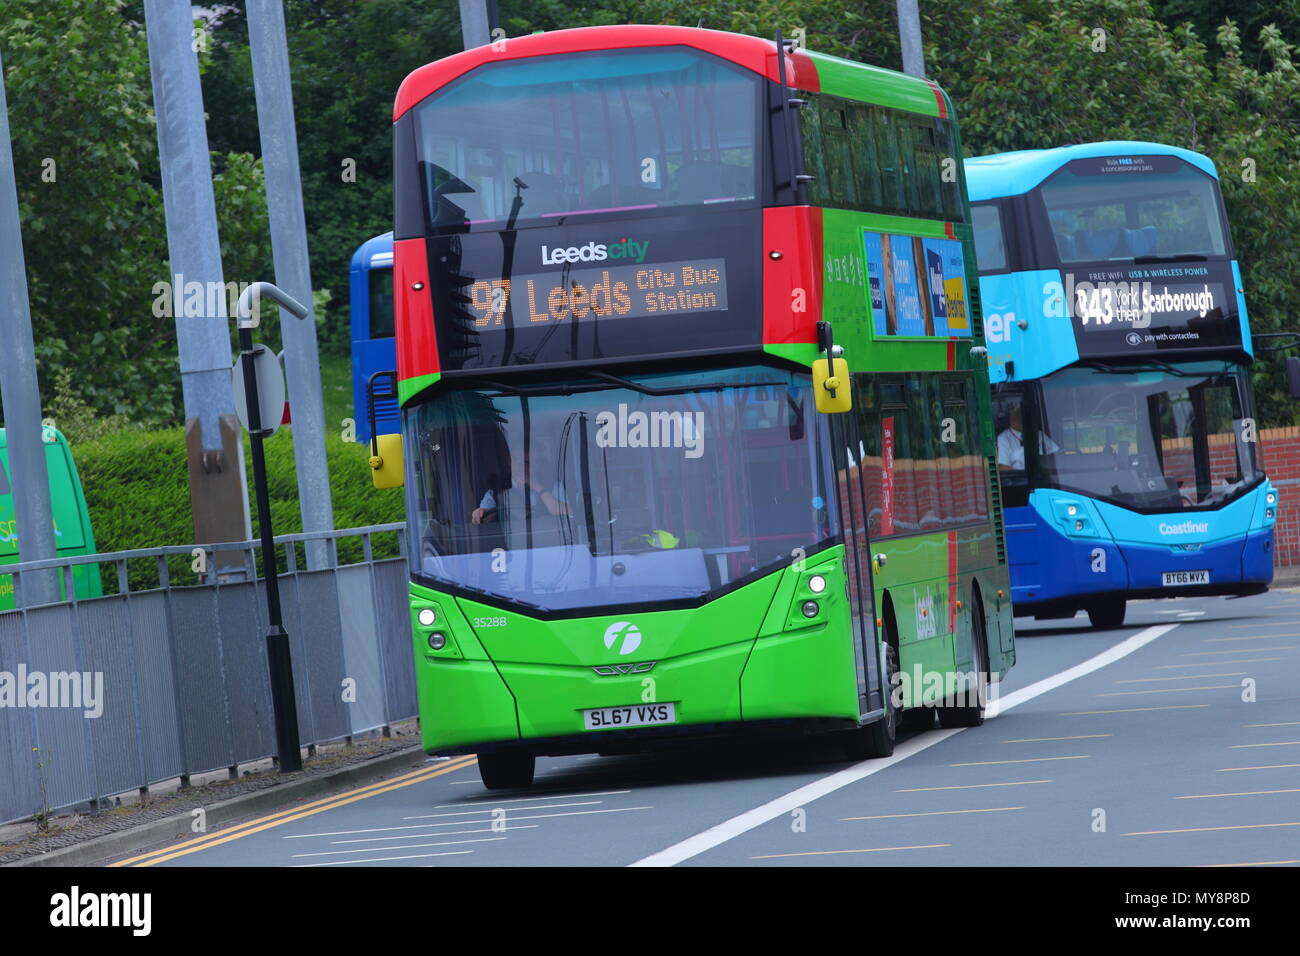 Coastliner Stock Photos & Coastliner Stock Images - Alamy